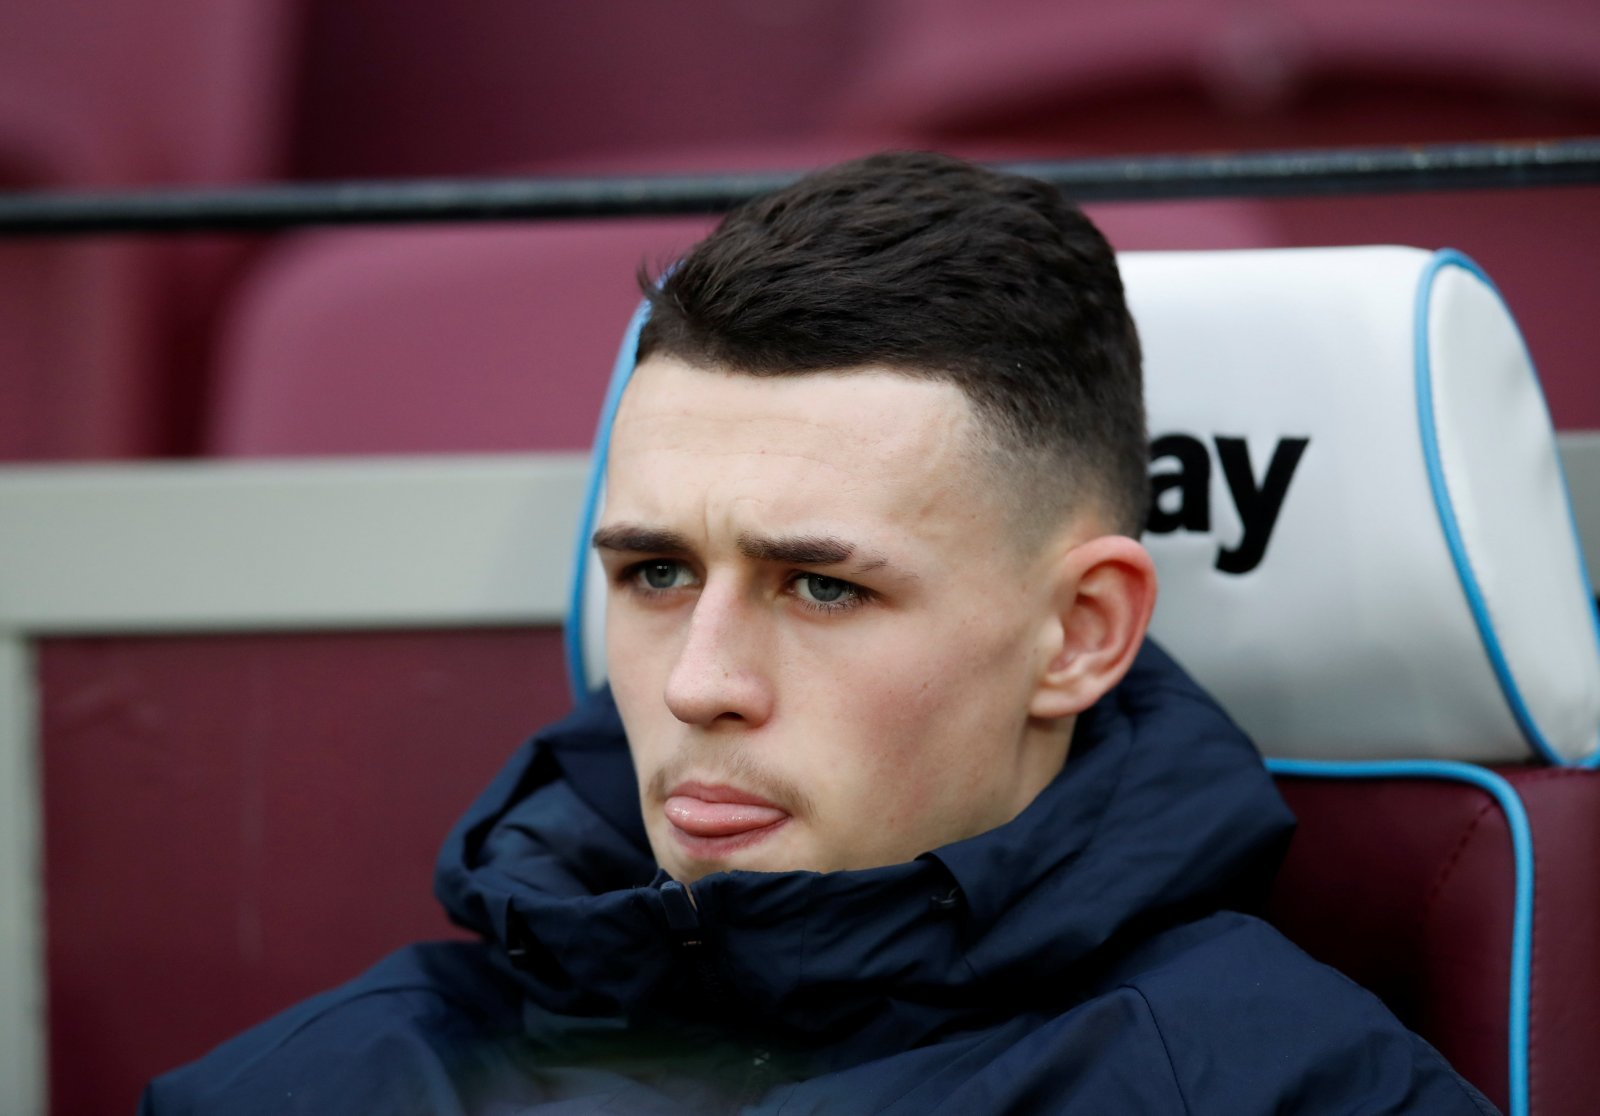 Manchester City: Fans react to Phil Foden coming on in the last minute against Crystal Palace